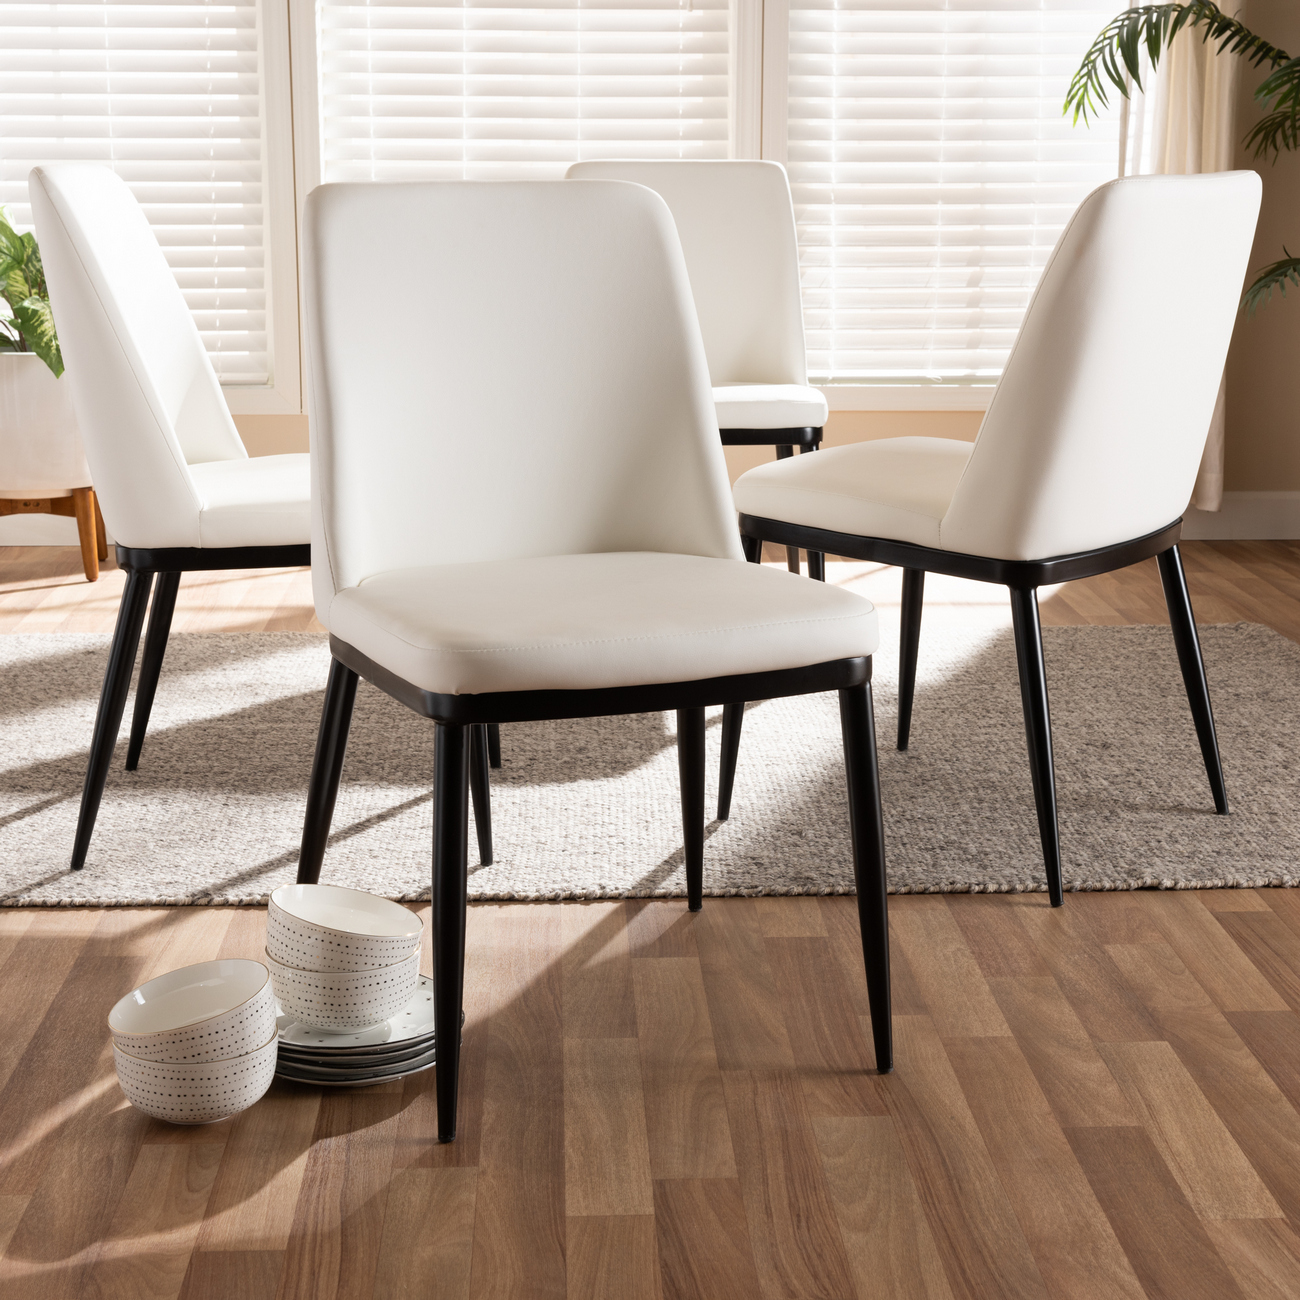 Wholesale Interiors Darcell Modern Contemporary White Faux Leather Upholstered